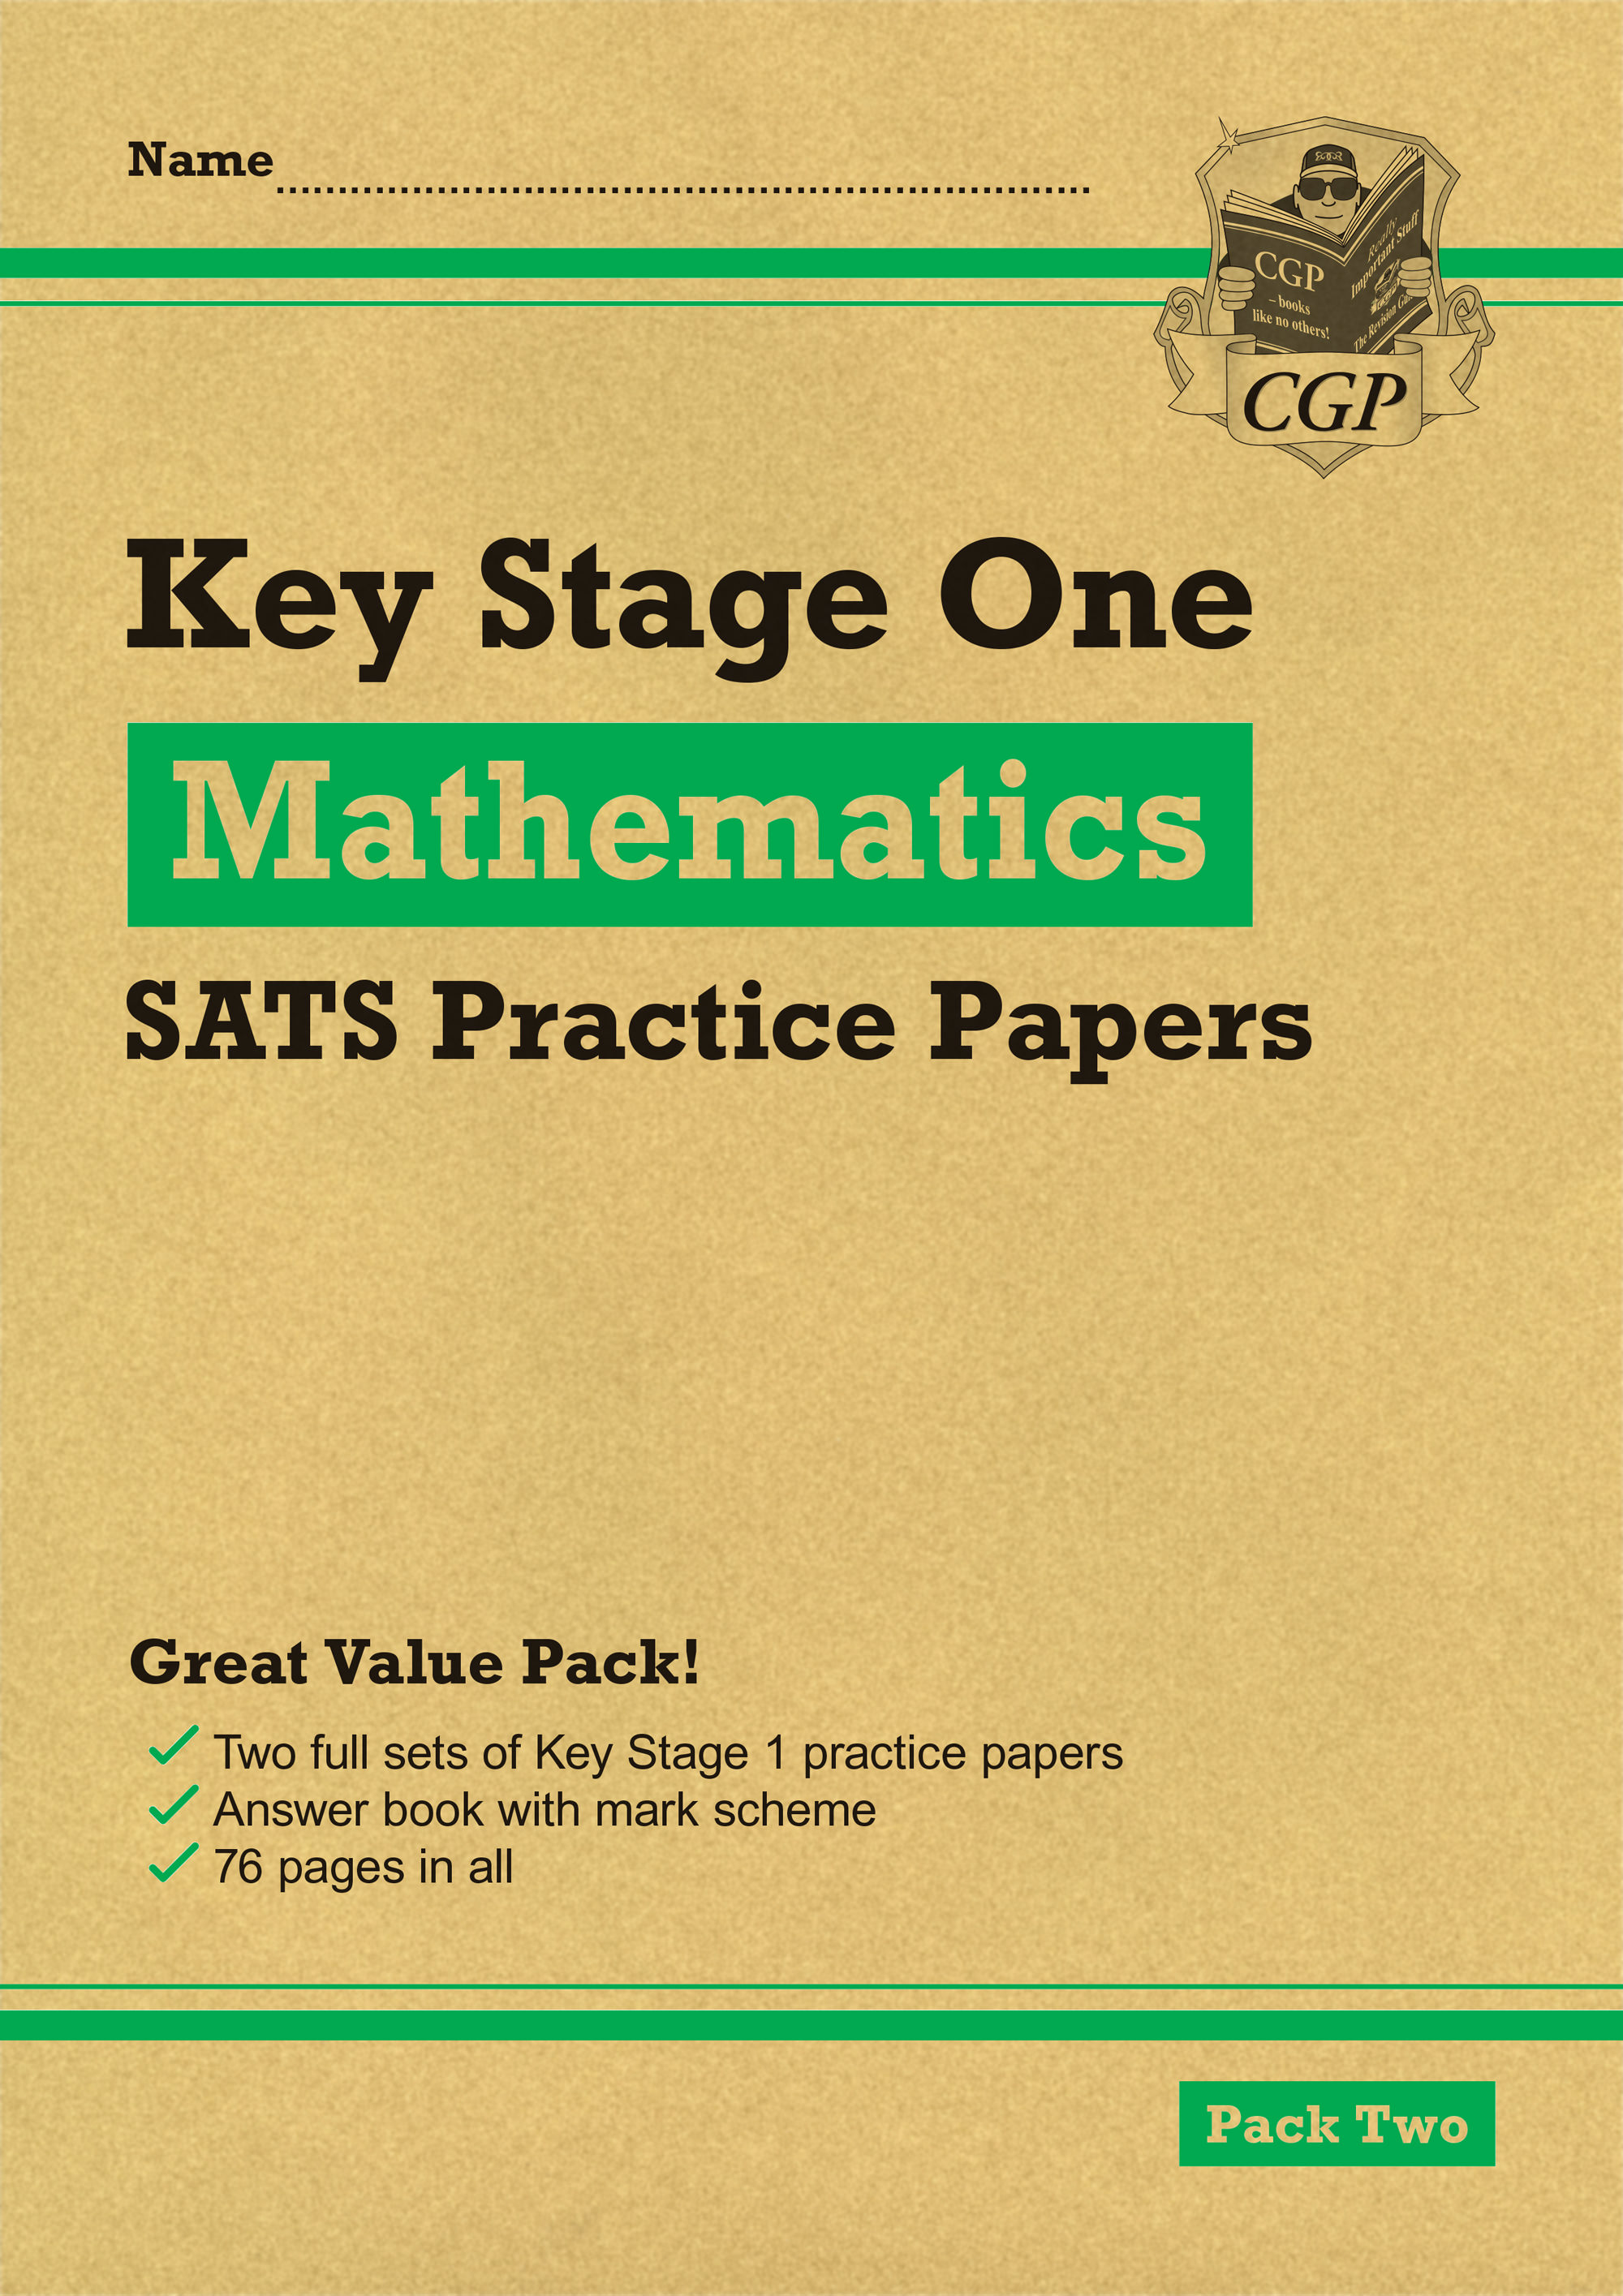 MHGP13 - New KS1 Maths SATS Practice Papers: Pack 2 (for the 2019 tests)